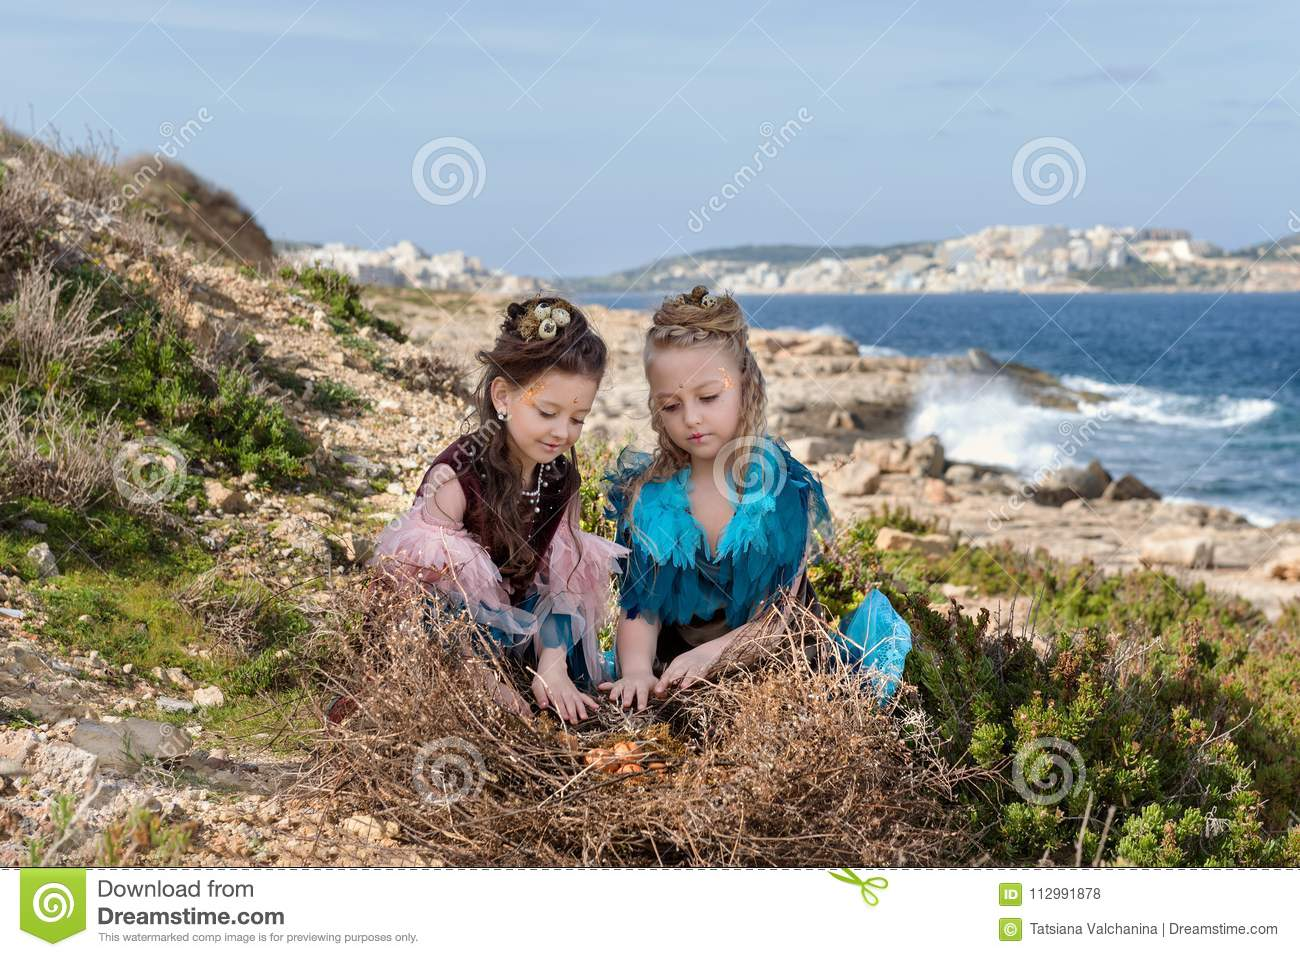 Two girls with hair nests and bird dresses looking at eggs in a large nest